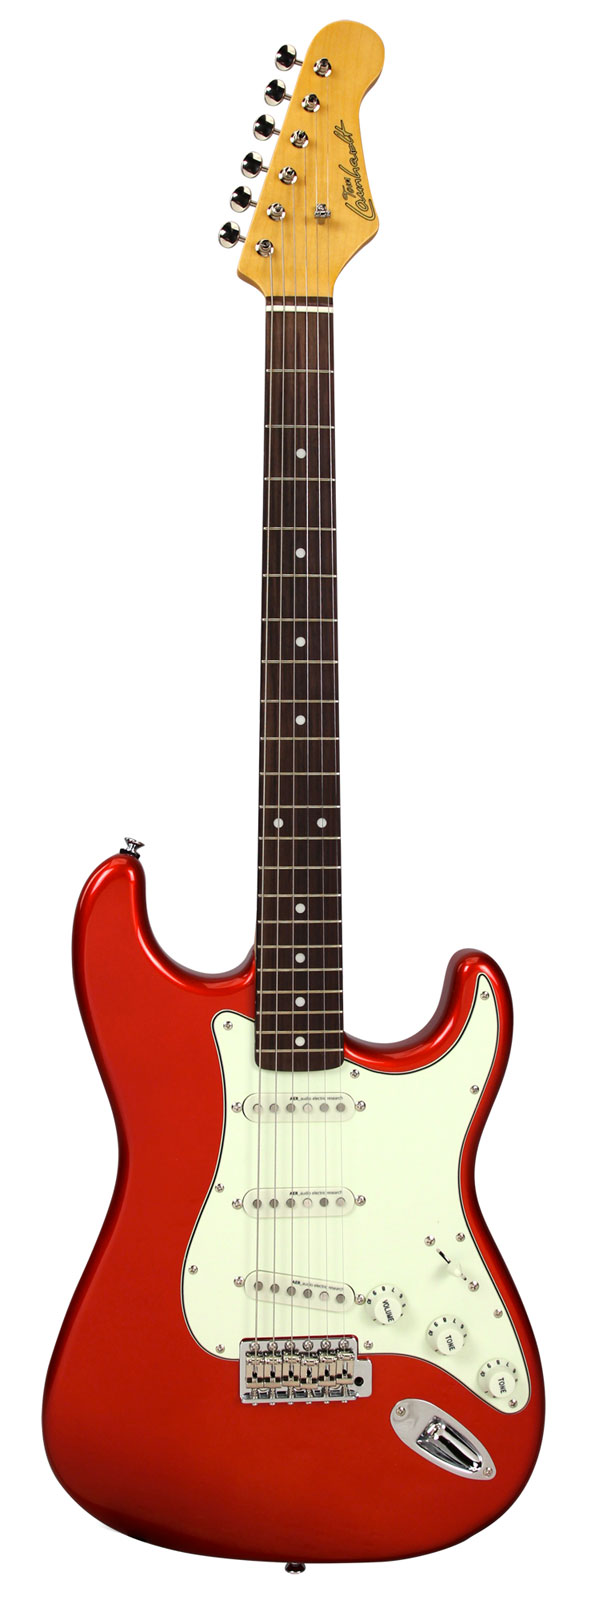 TOM LAUNHARDT ST61 CANDY APPLE RED RW